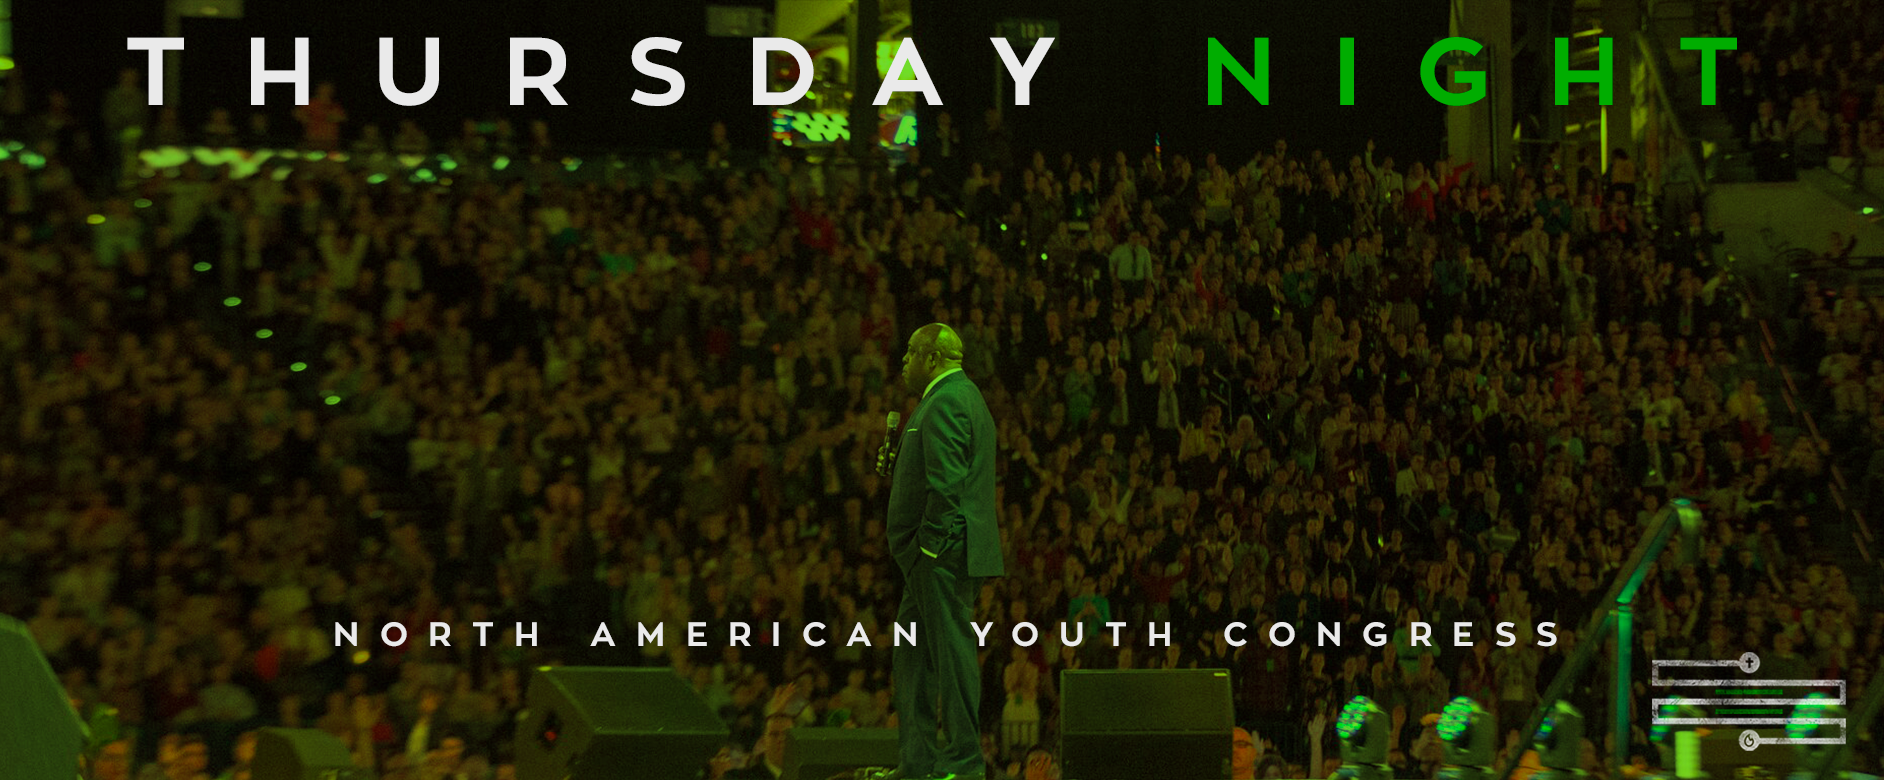 North American Youth Congress, Thursday Night